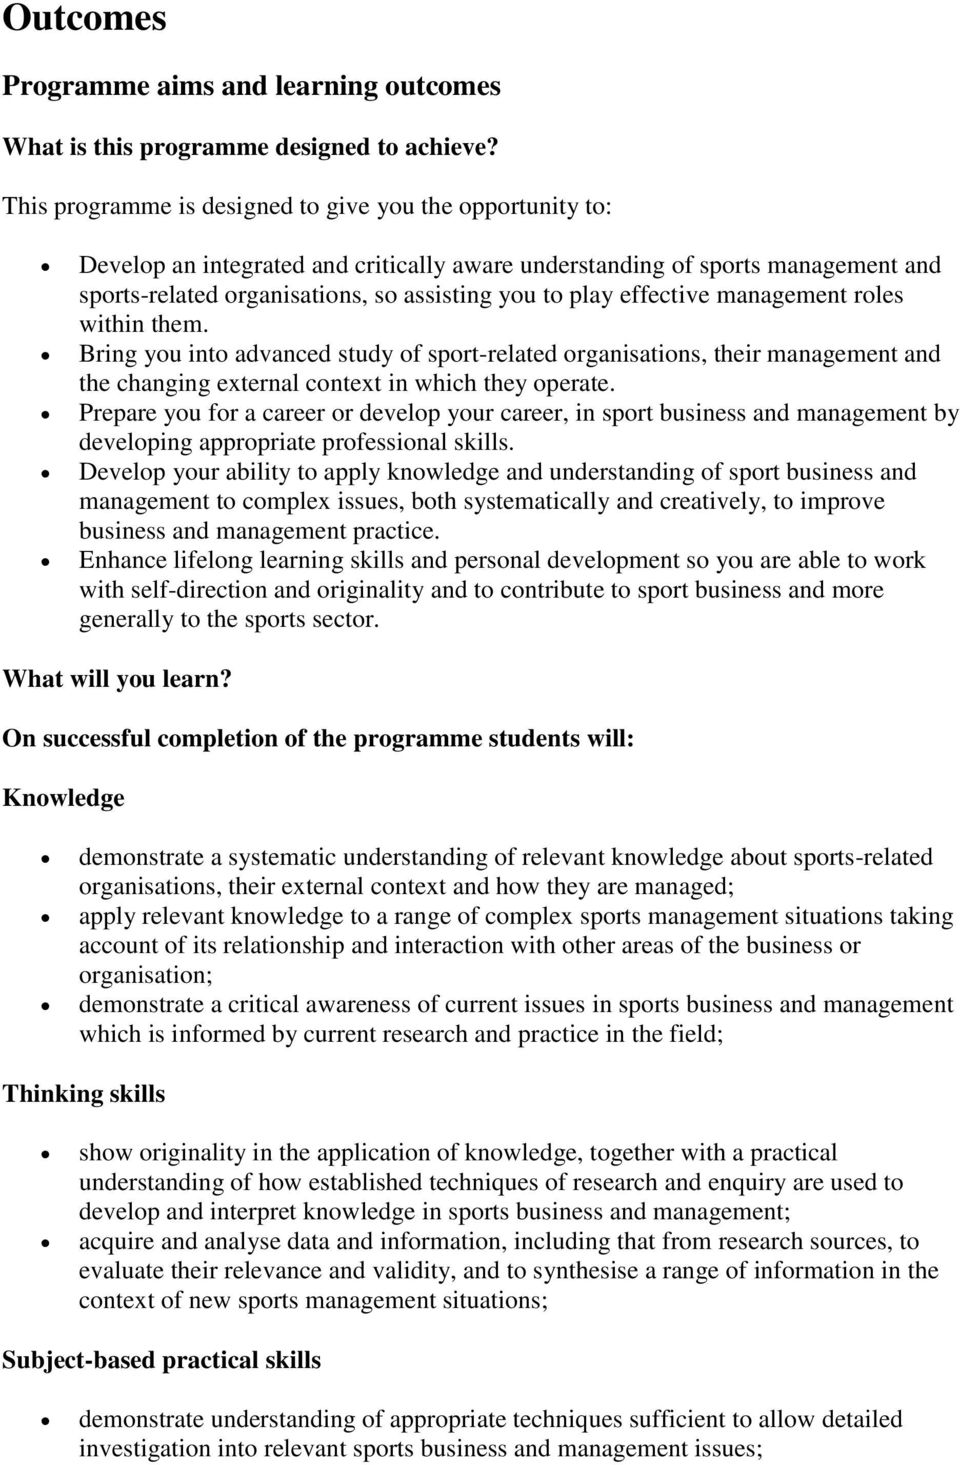 effective management roles within them. Bring you into advanced study of sport-related organisations, their management and the changing external context in which they operate.